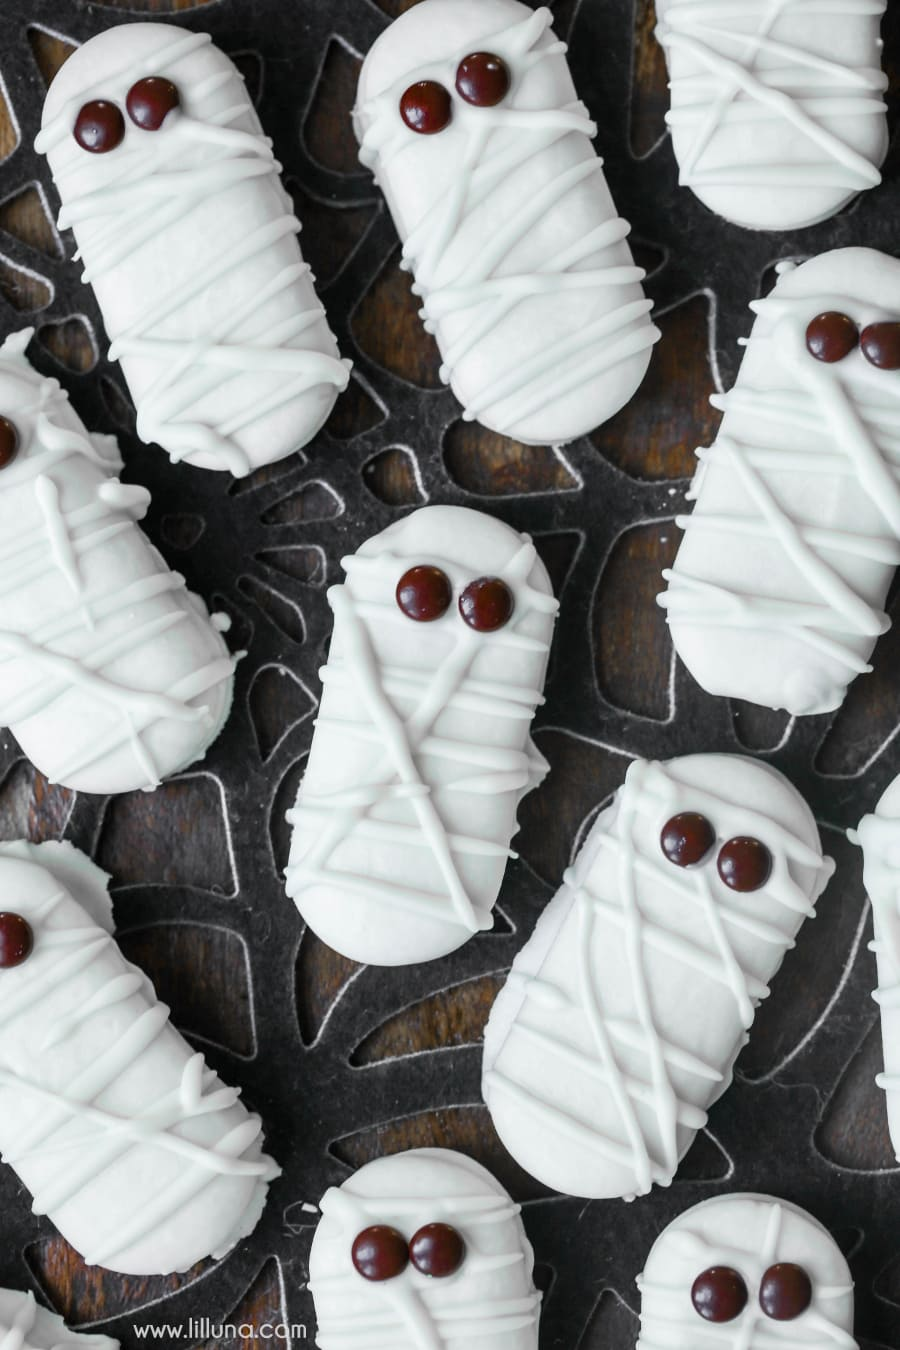 Mummy Cookies - a simple, delicious and cute treat idea for Halloween!